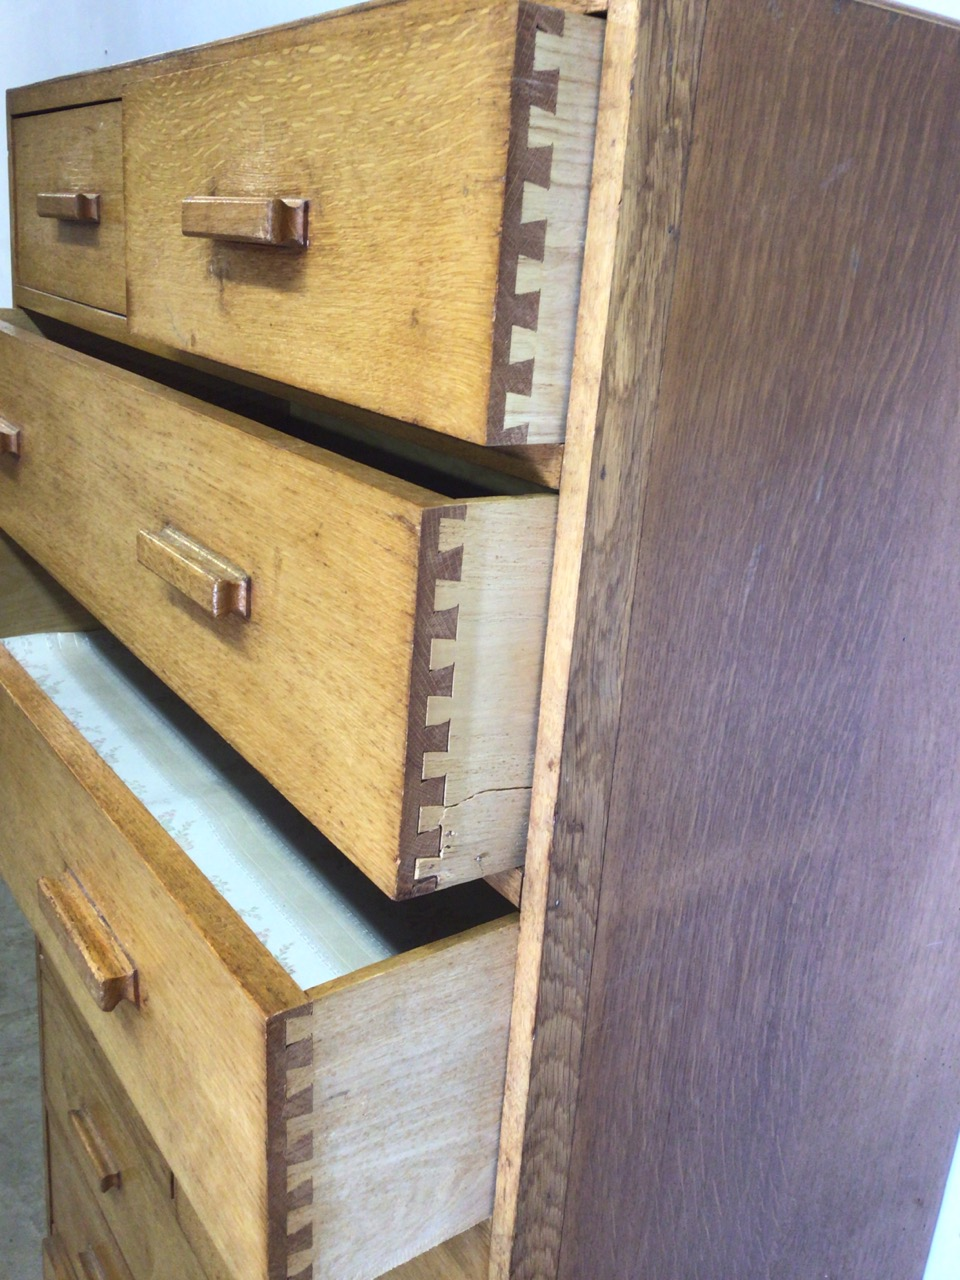 A mid century oak fronted ten drawer tall boy with original handles. W:91cm x D:41cm x H:158cm - Image 3 of 4